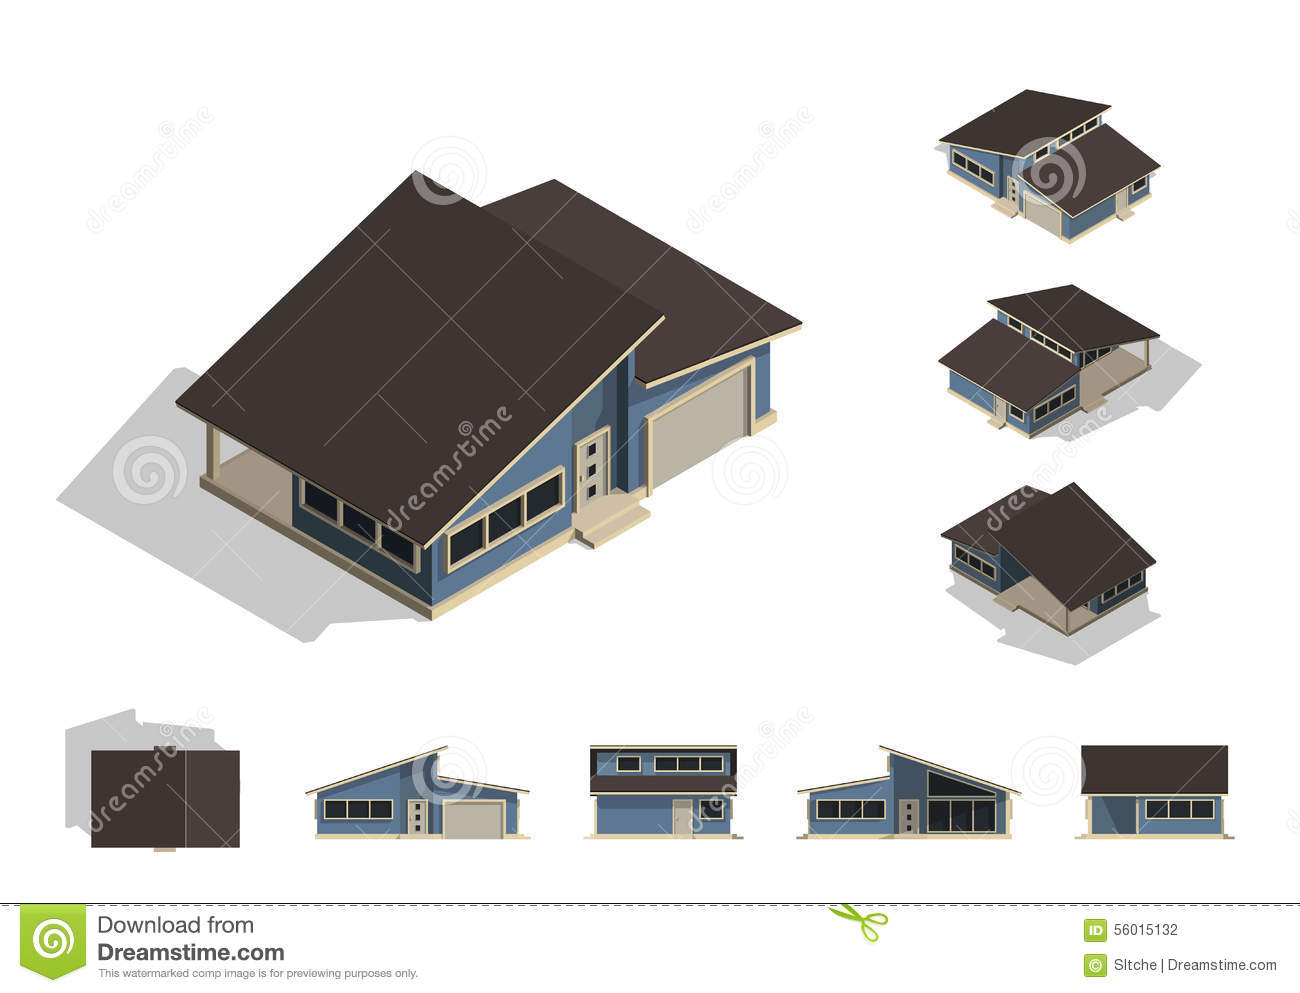 Set of isolated house building kit creation detailed urban and rural house concept design in - Build house plans online free concept ...